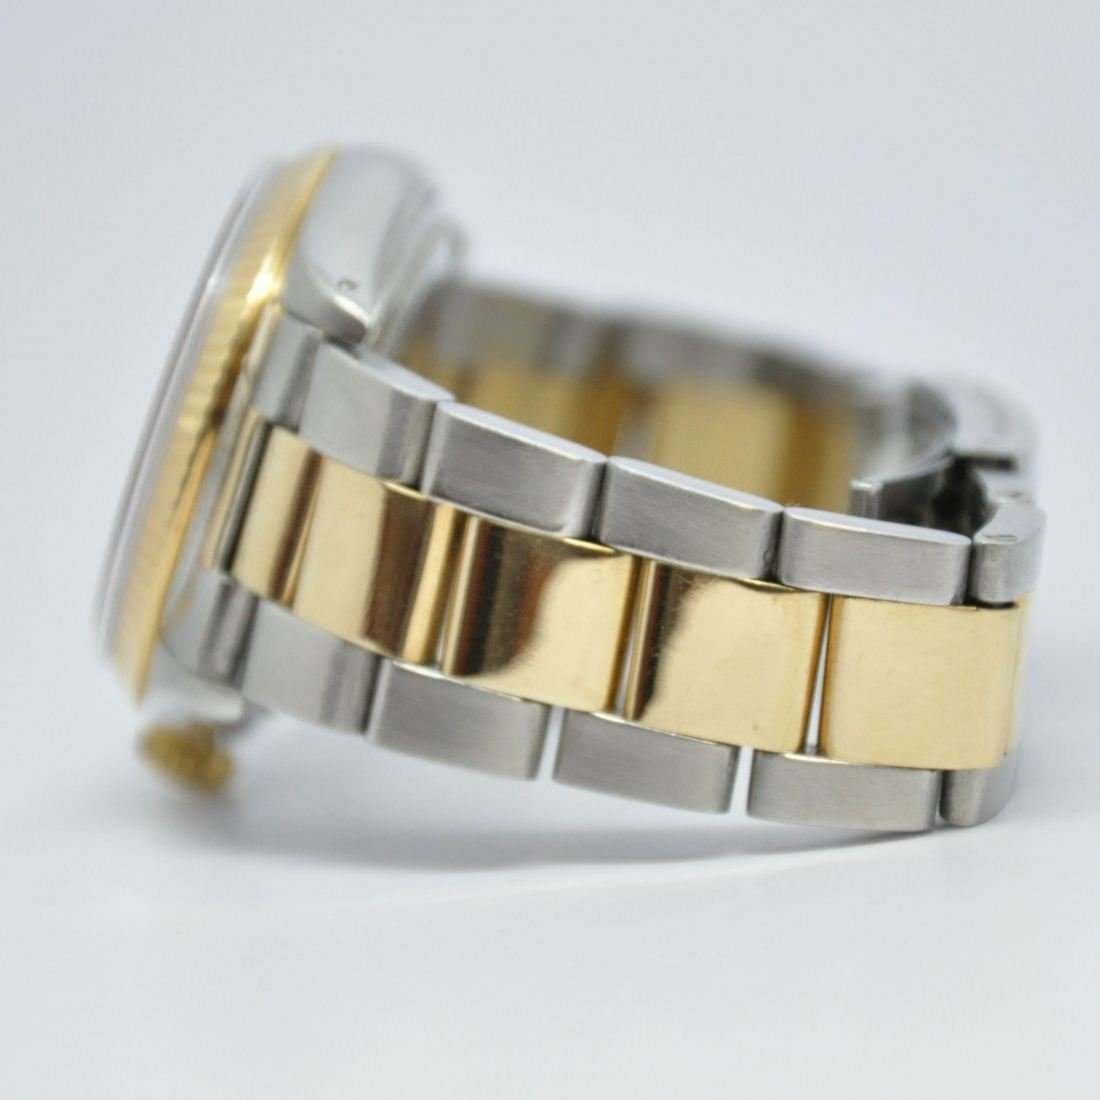 Rolex Oyster Perpetual DateJust Day-date 2 Two tone - 7